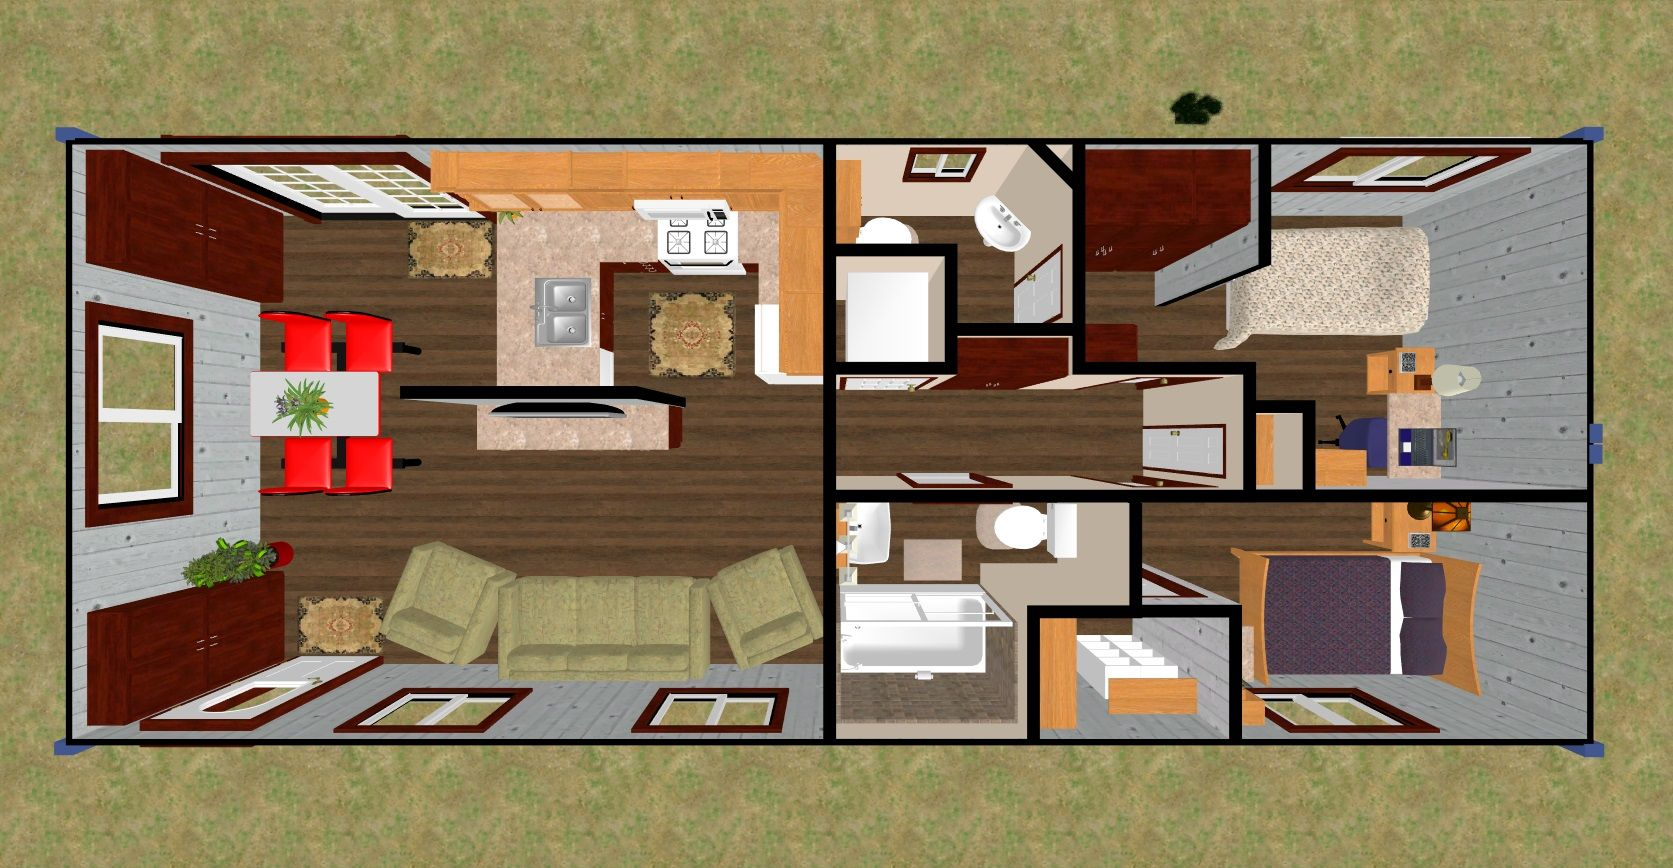 600 sq ft house interior design. The flipped 640 sq ft  Daybreak s 3D top view This Plan which is a fave of mine in the ISBU section but I moved main bed to back